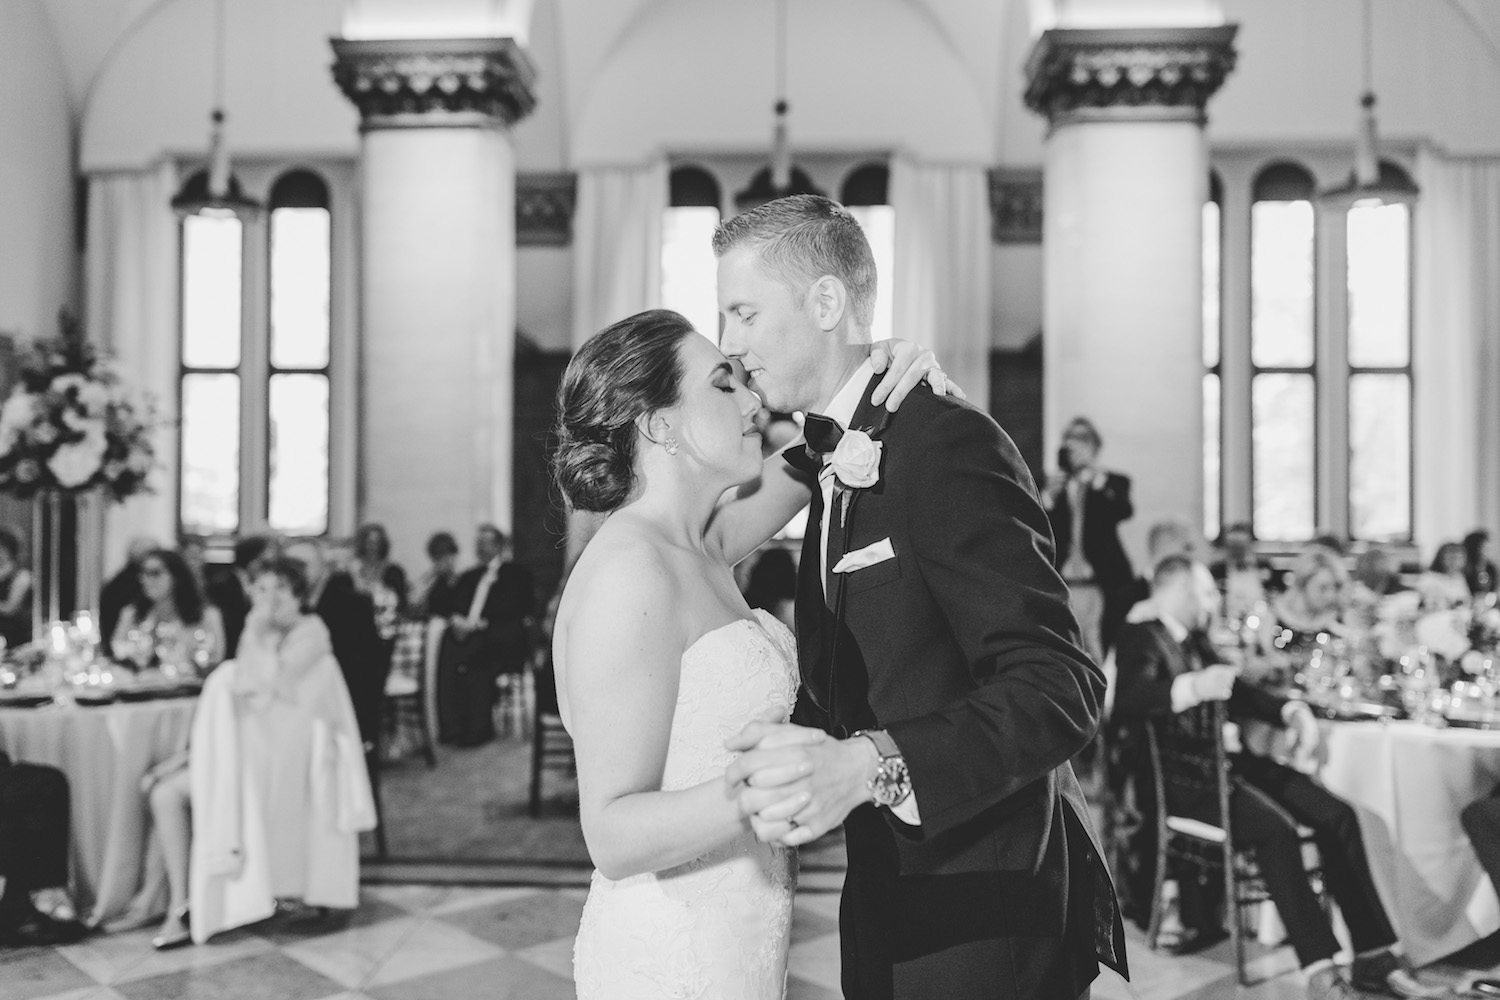 Bride and grooms first dance at City Flats Hotel wedding